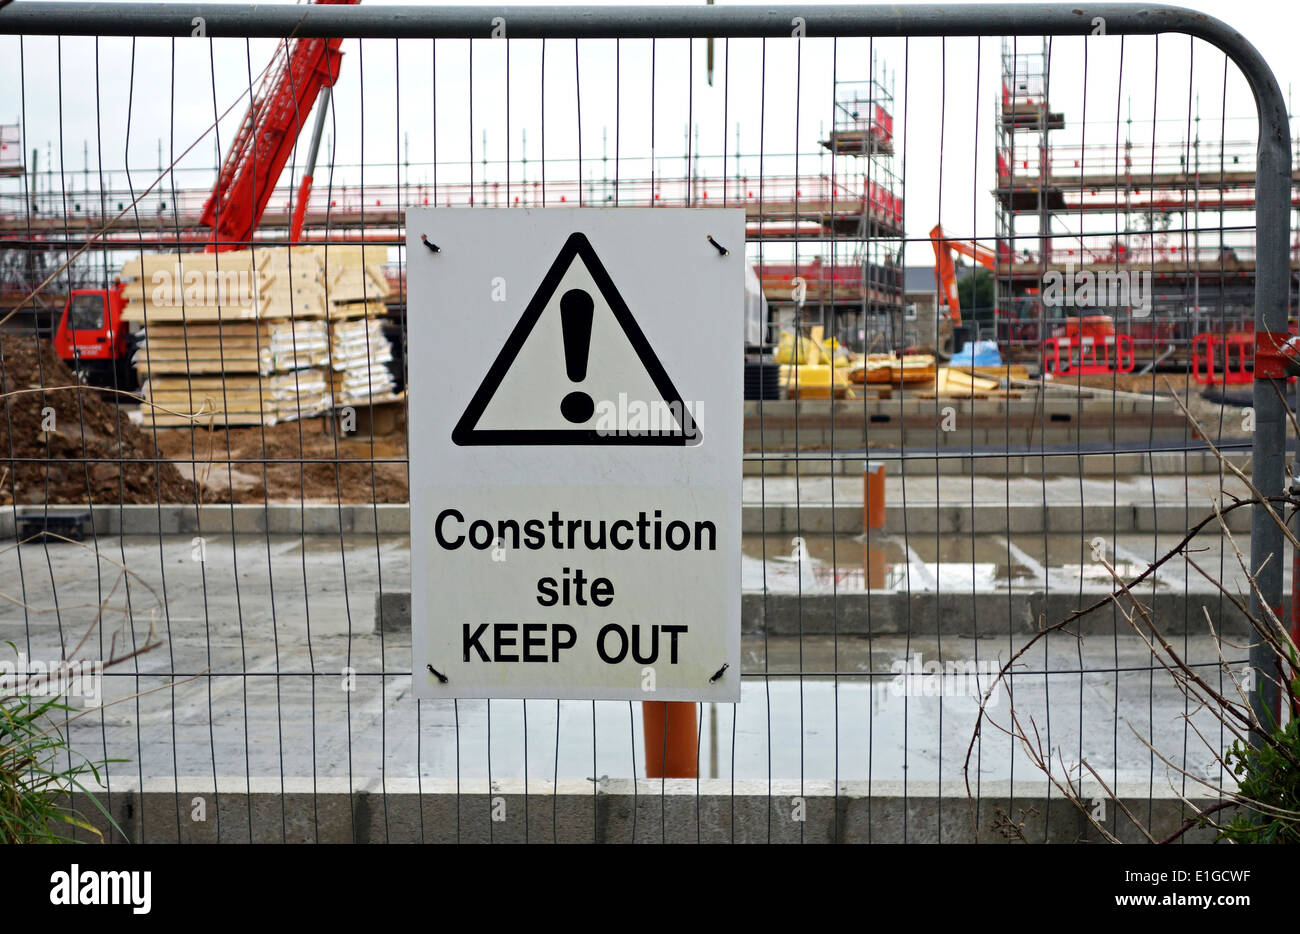 keep out sign at a construction site - Stock Image